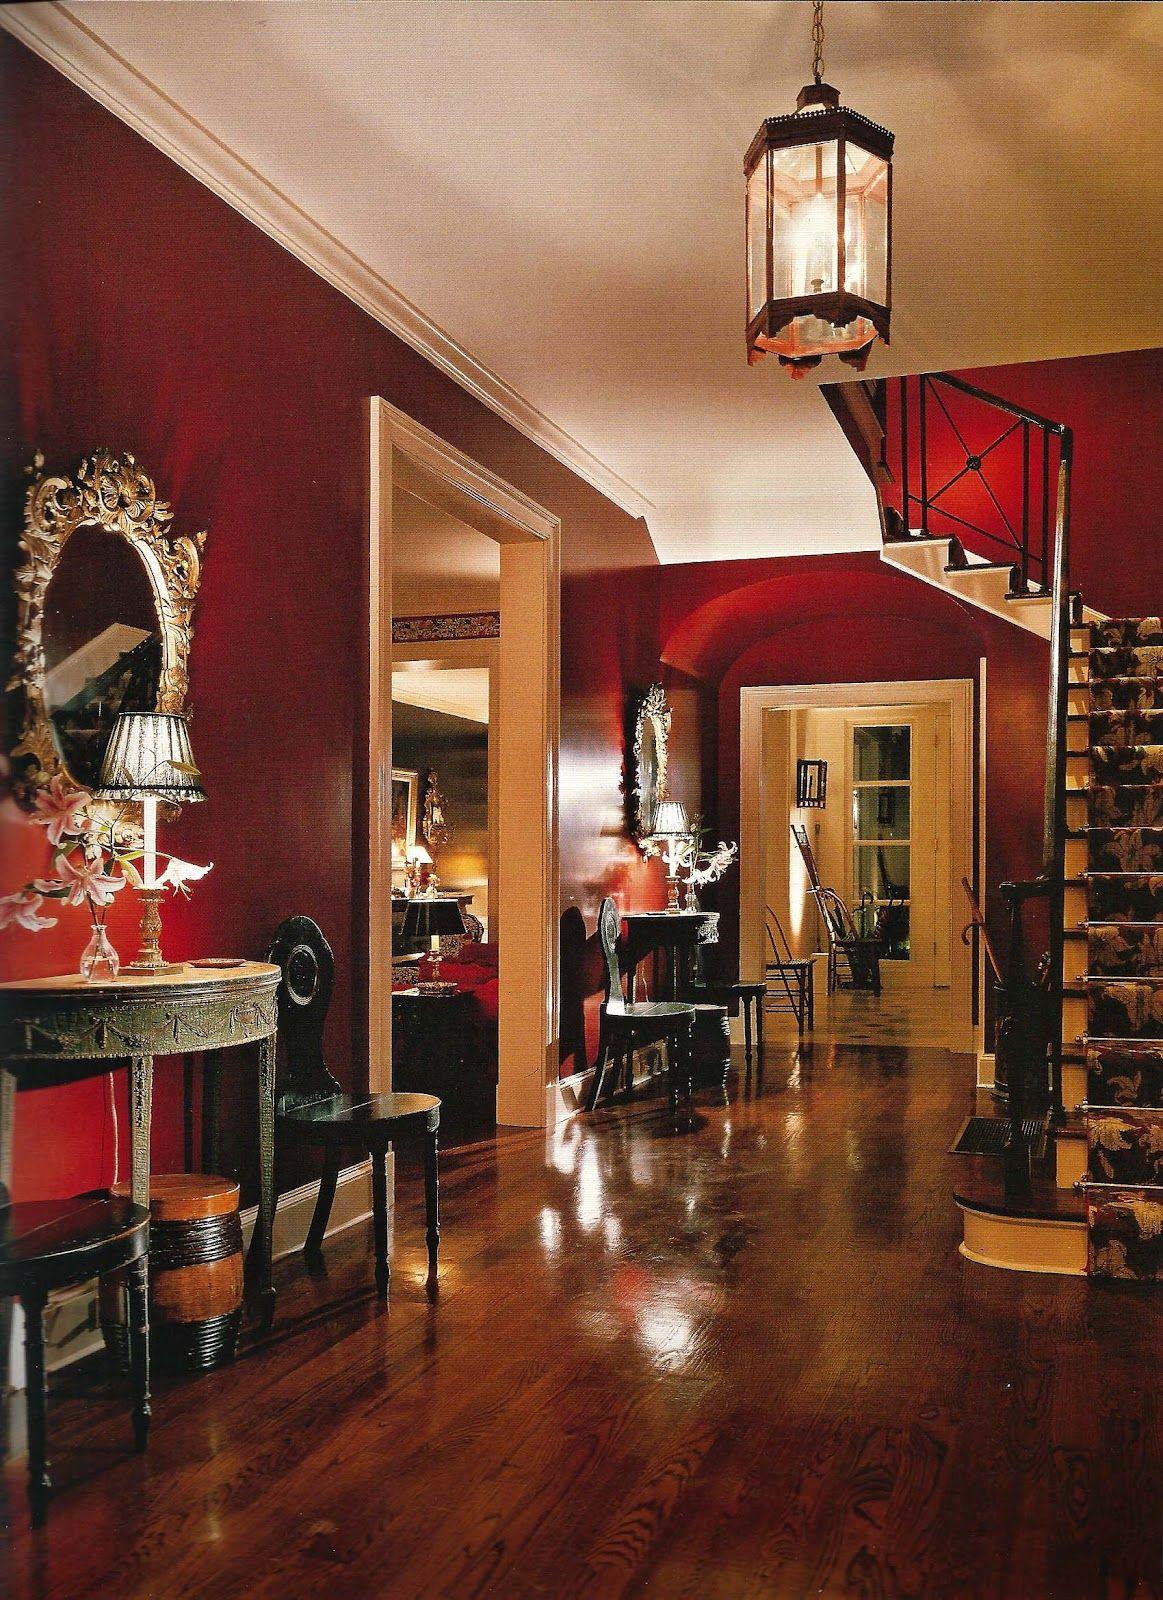 Love The Rich Colors And Contrast In This Space. Deep Reds, Blacks, Browns All Molded Together